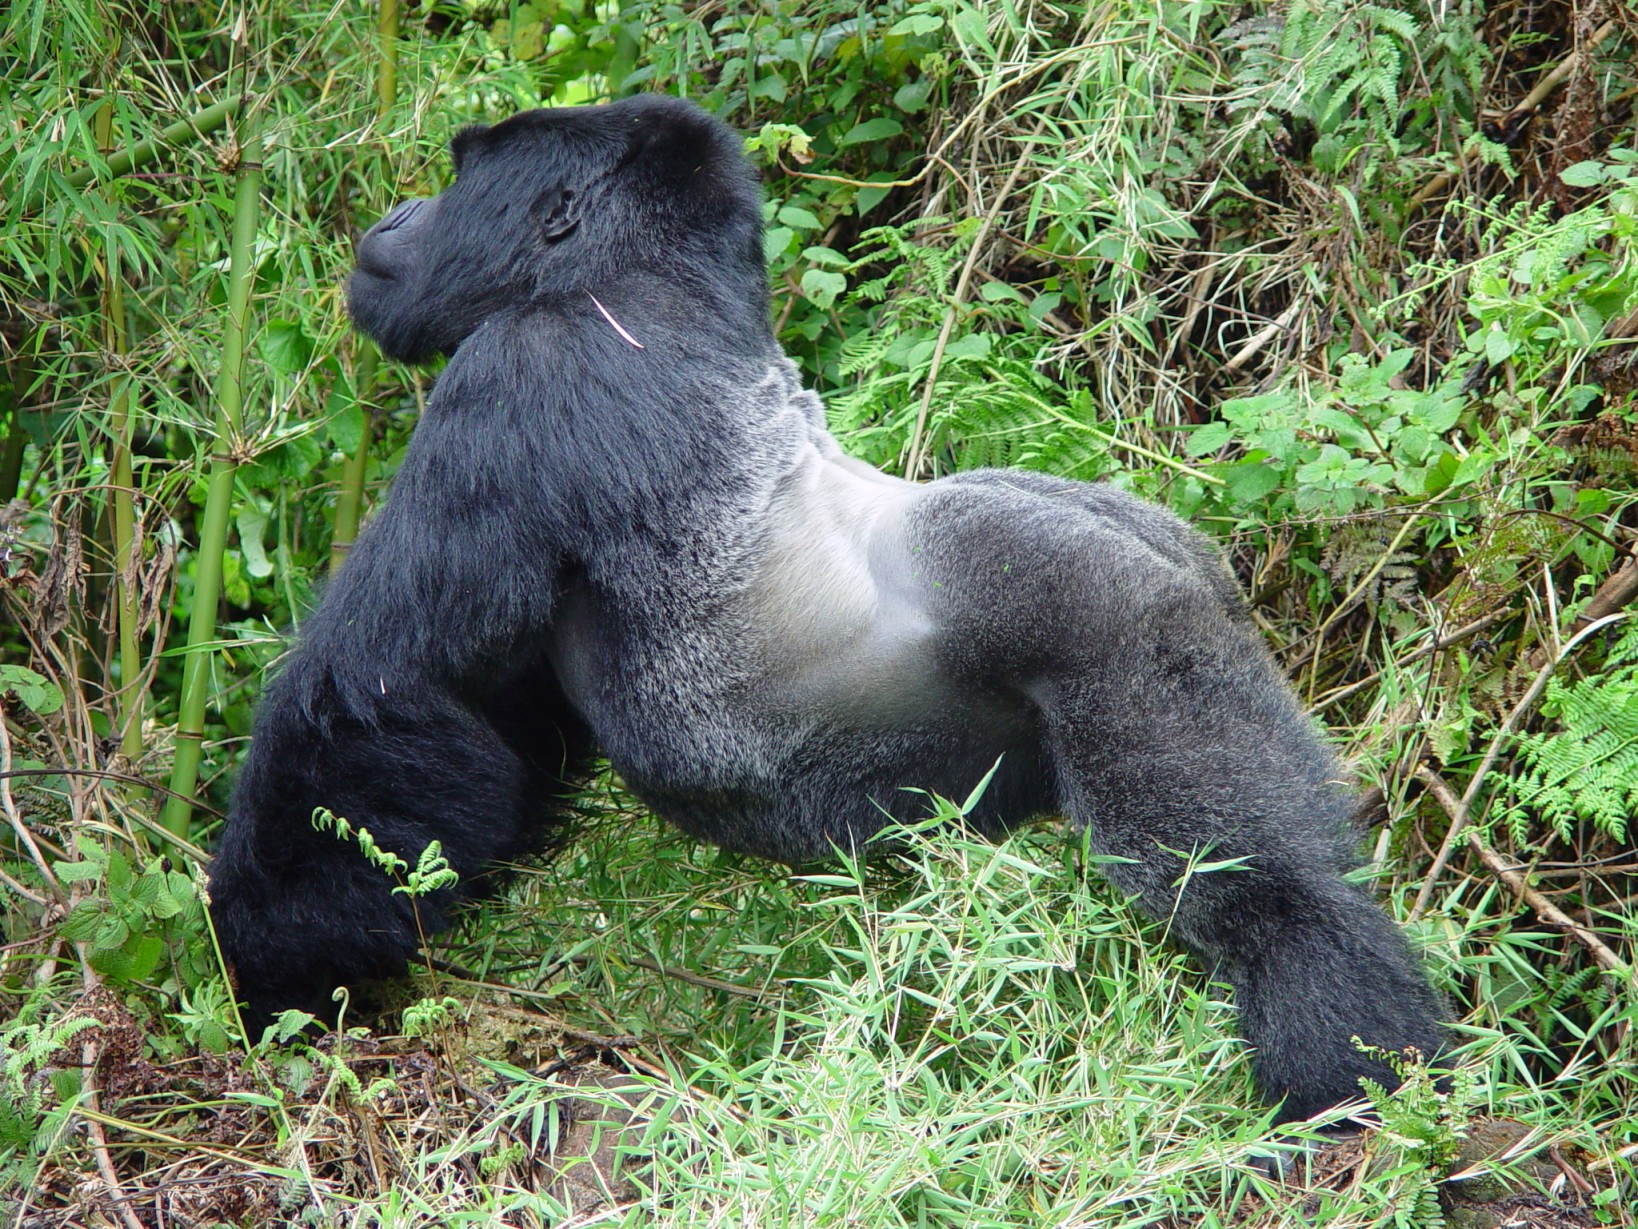 Silver back mountain gorilla in Bwindi NP